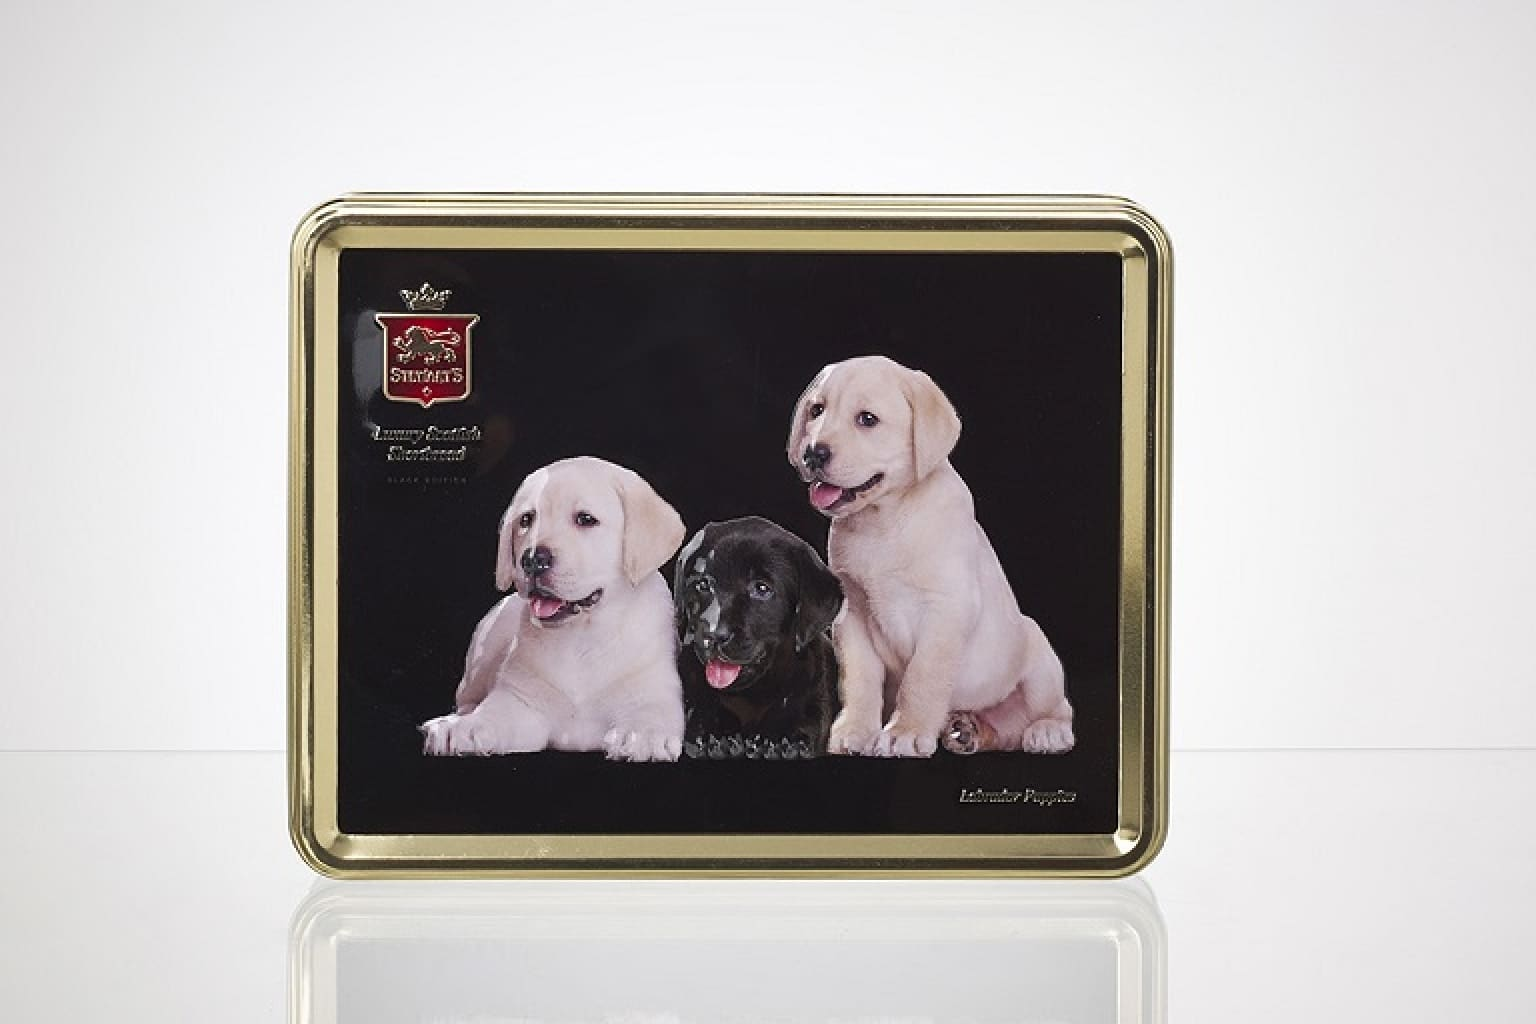 Labrador Puppies Tin Of Biscuits